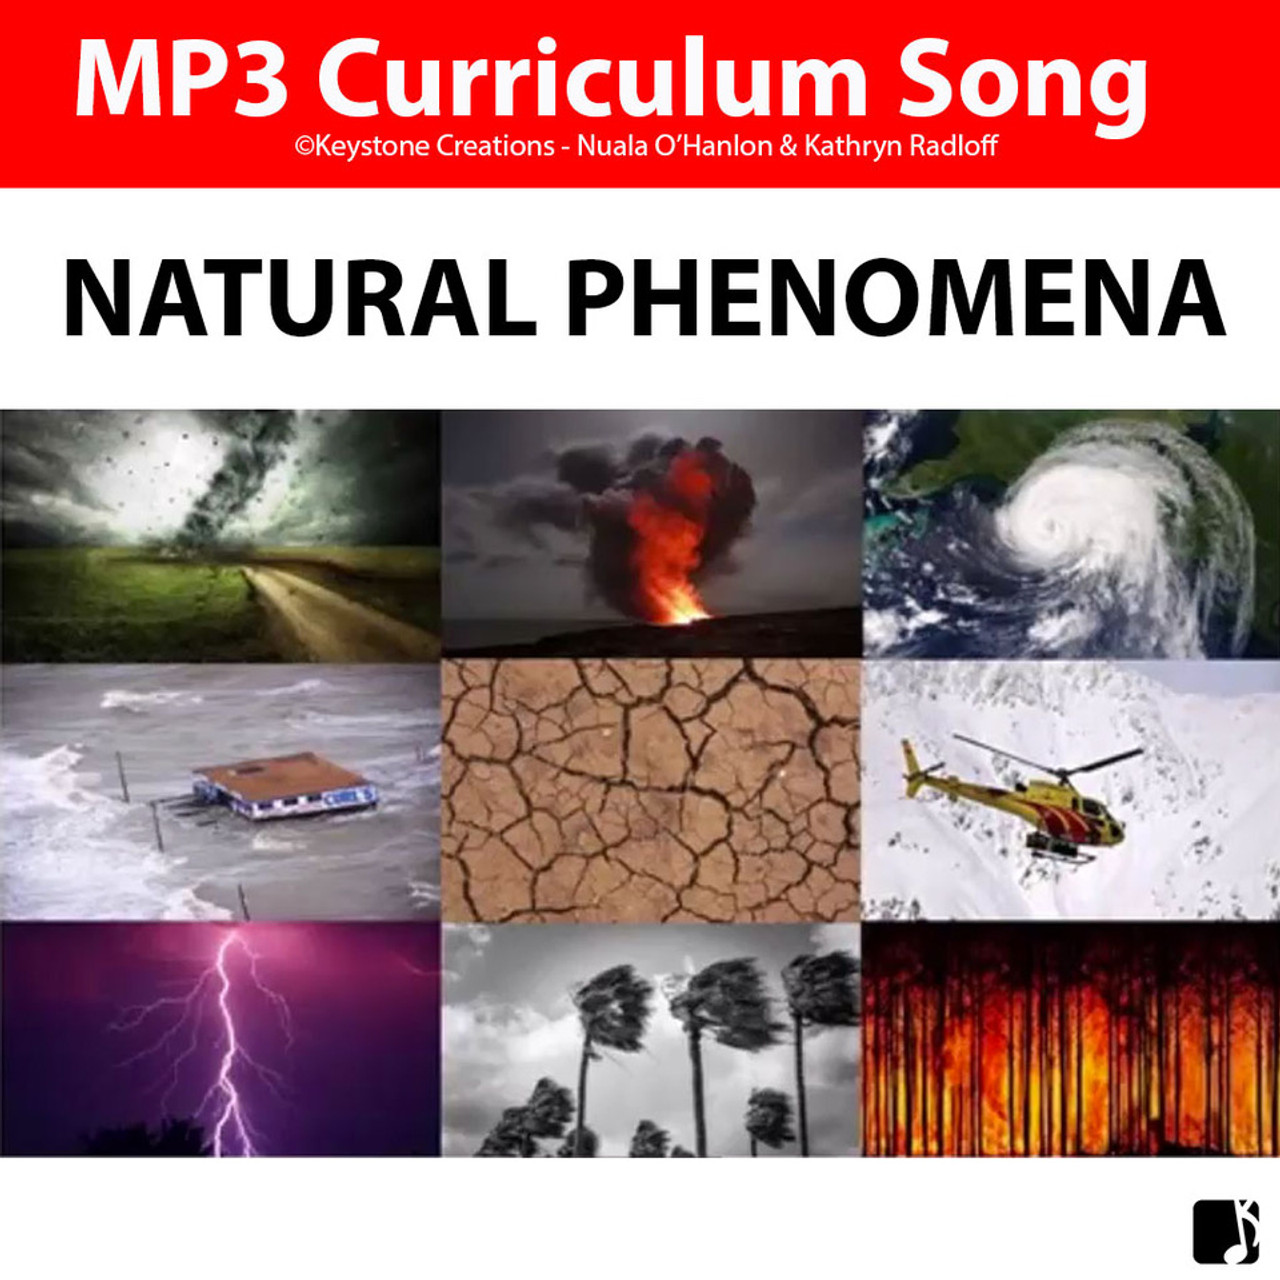 'NATURAL PHENOMENA' ~ Curriculum Song MP3 & Lyrics PDF